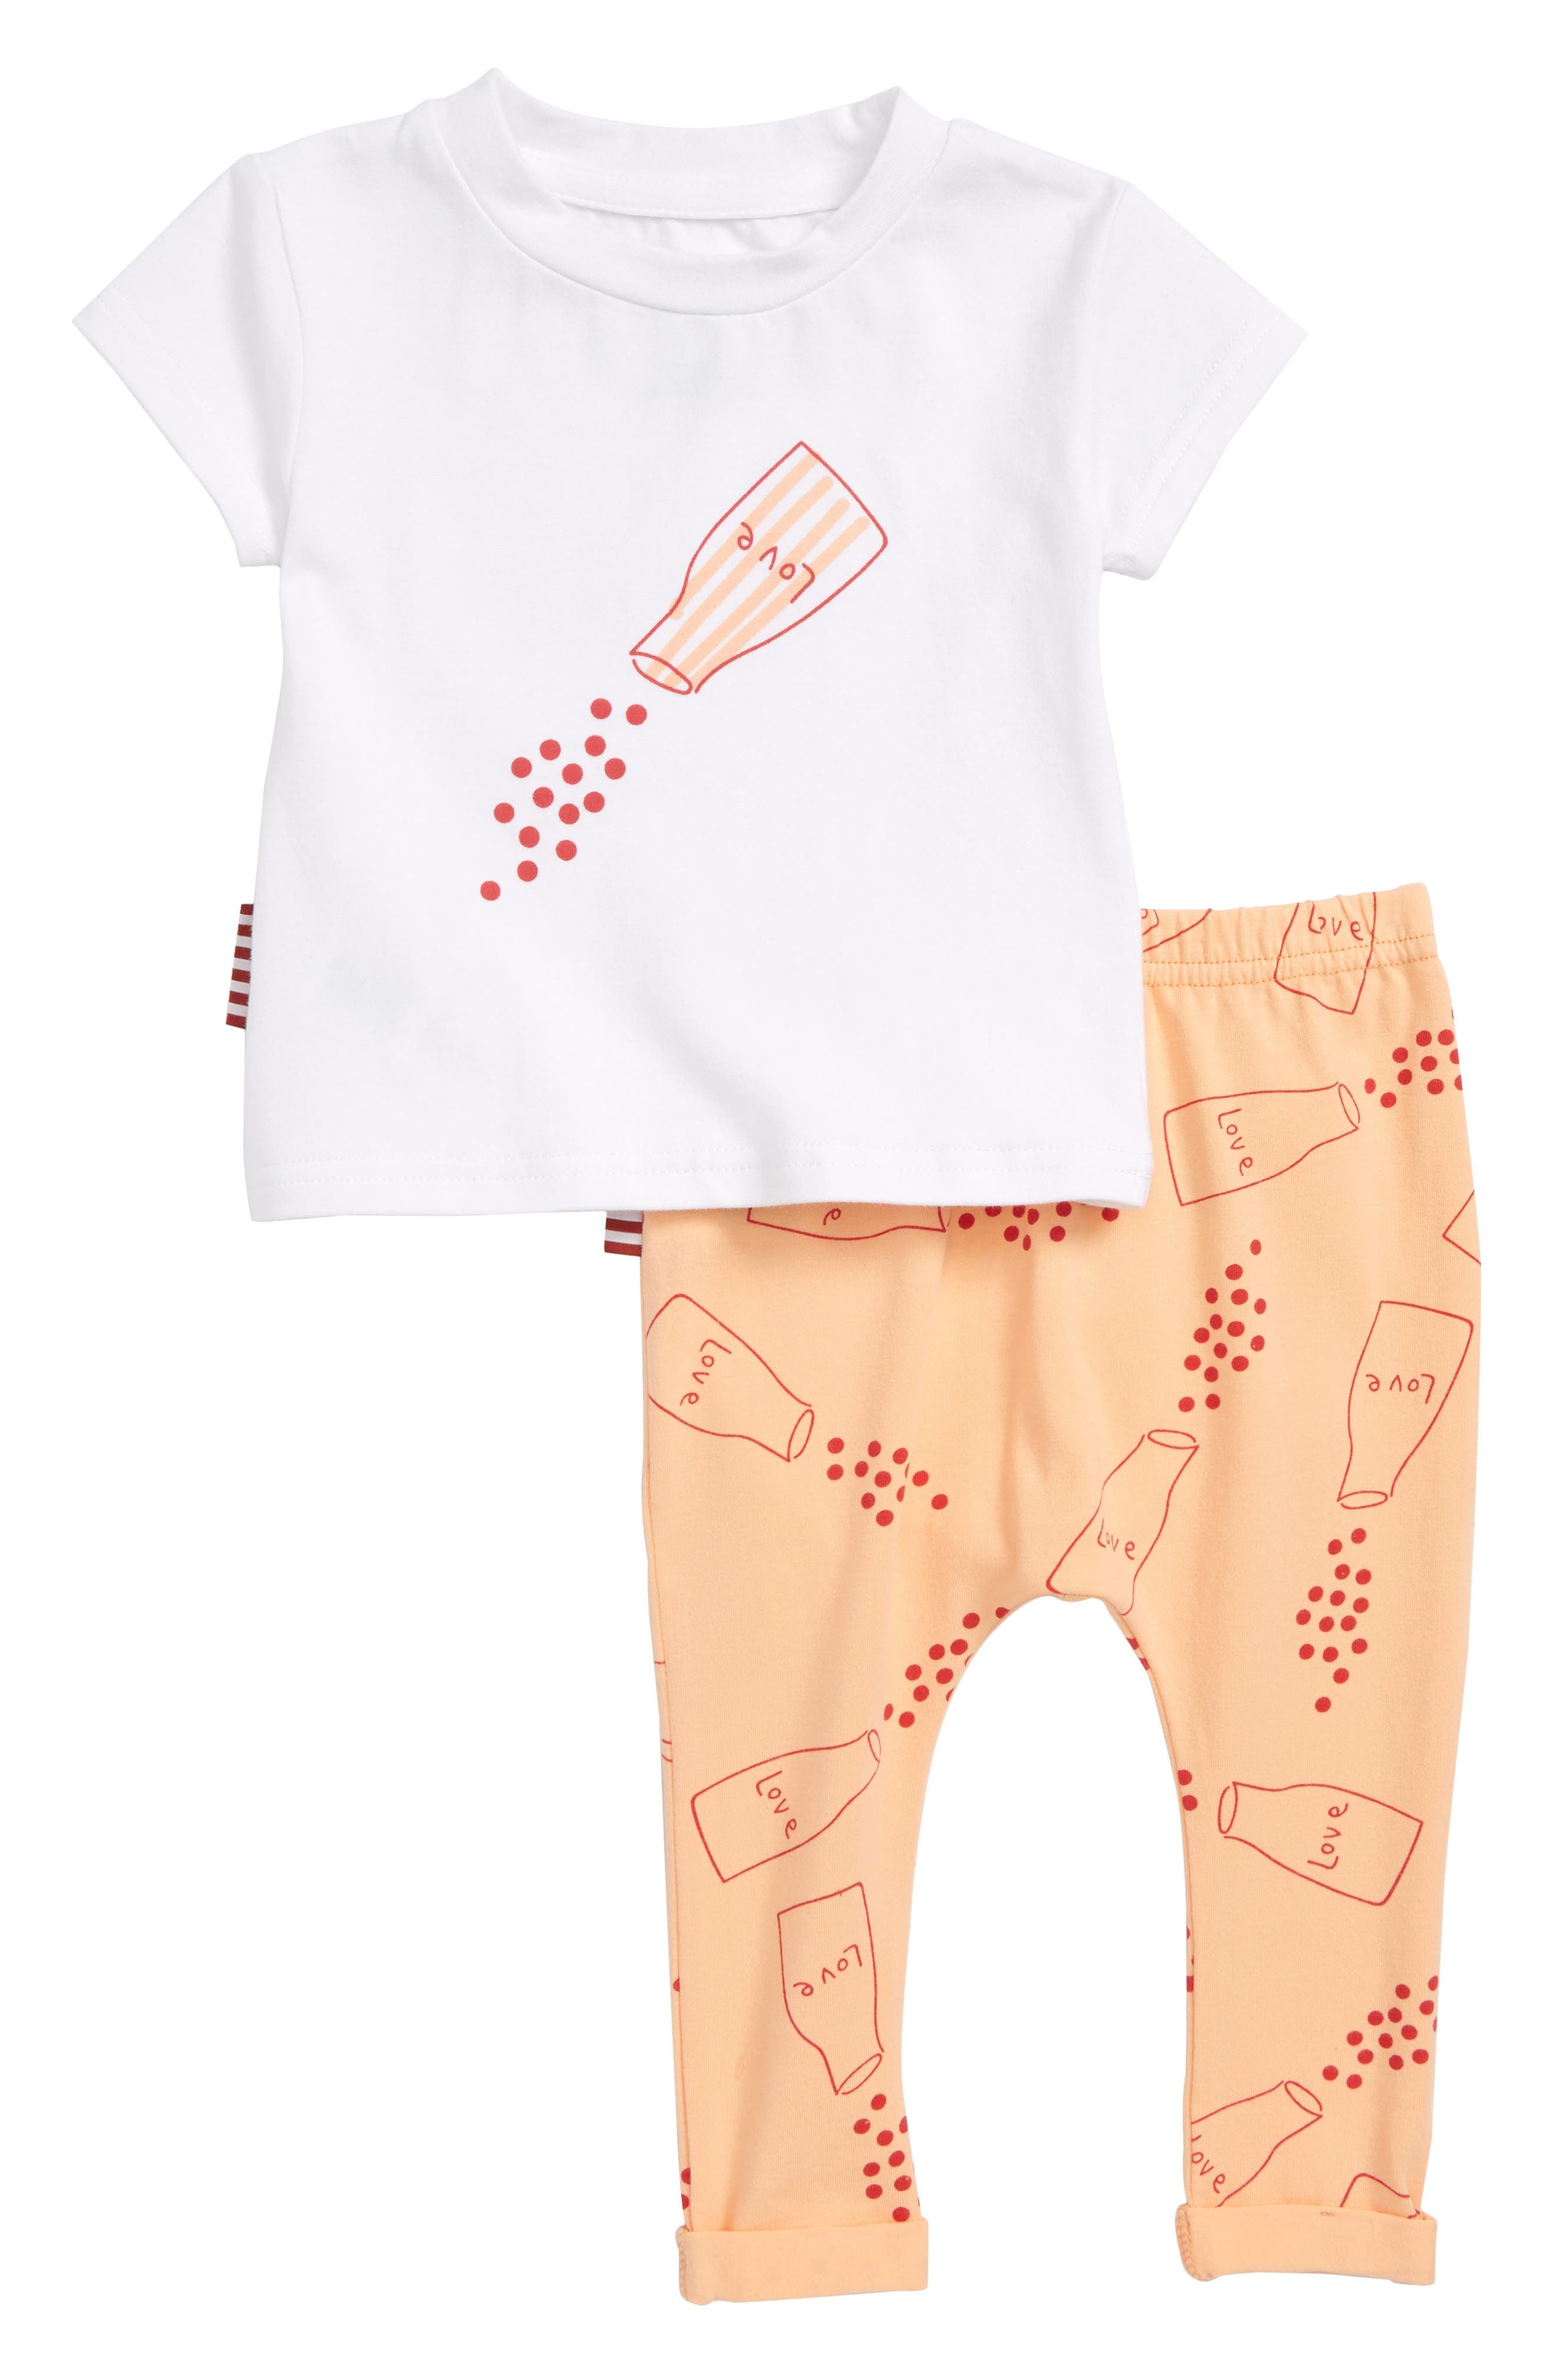 Sprinkle Love Print Tee & Leggings Set,                         Main,                         color, 109